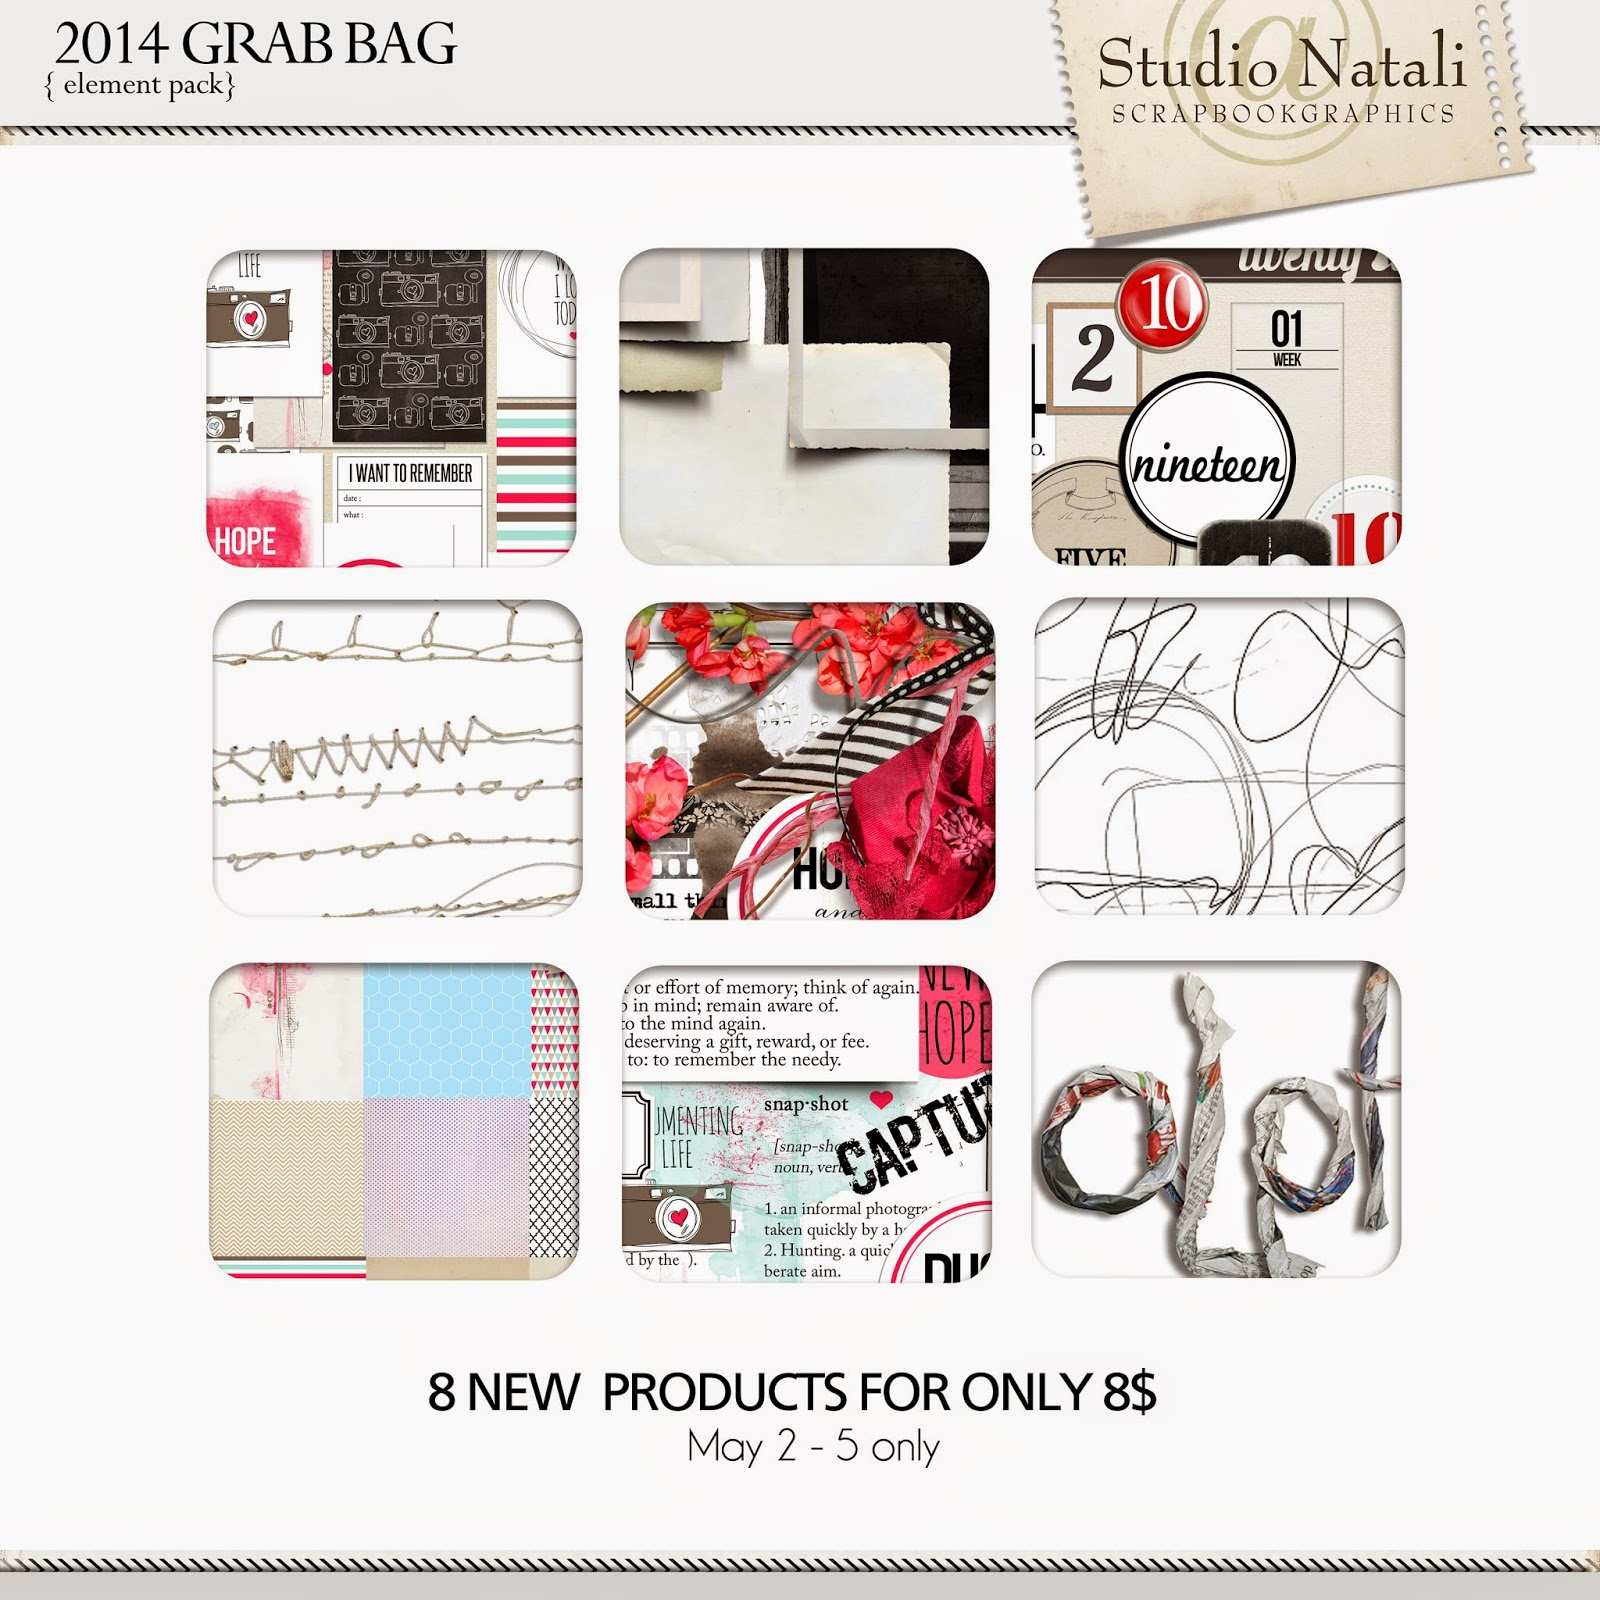 http://shop.scrapbookgraphics.com/2014-CU/PU-Grab-Bag.html